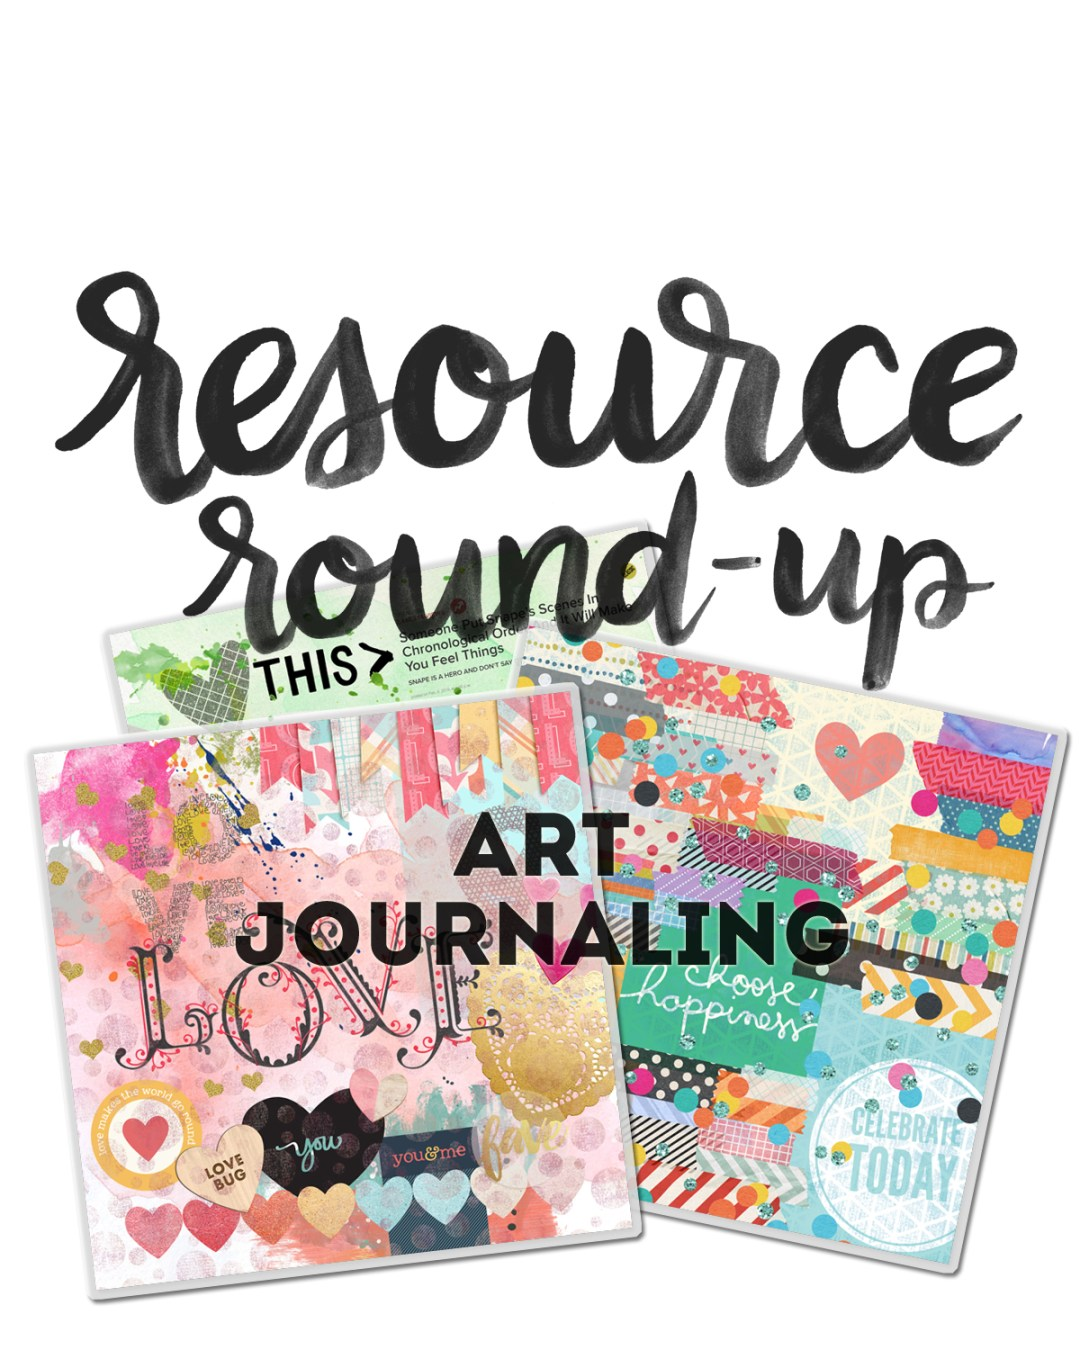 Art Journaling Resources - www.randomolive.com